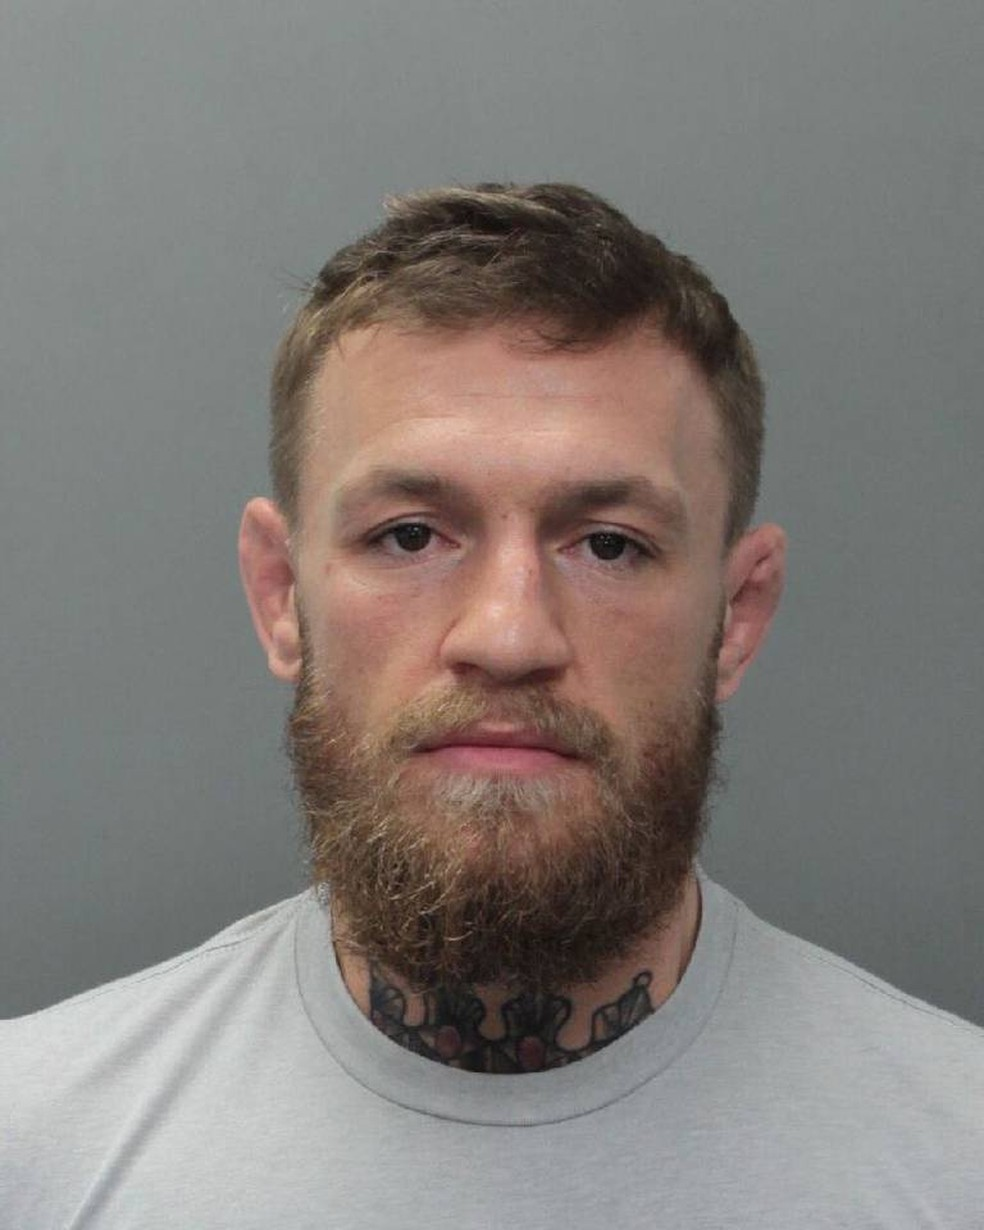 Conor McGregor em foto na cadeia em Miami Beach — Foto: City of Miami Beach Police Department